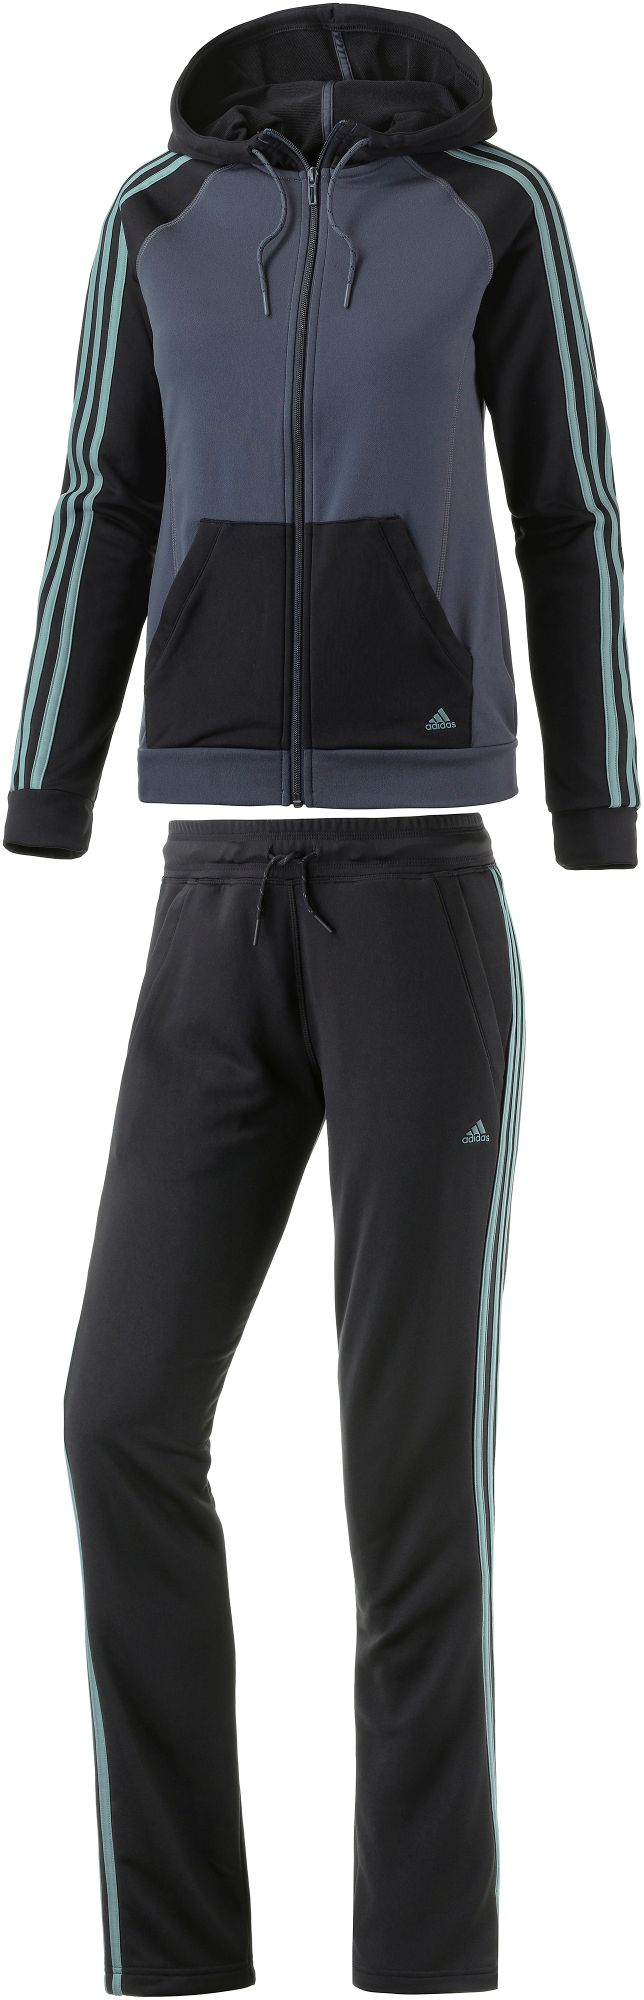 Bild adidas Trainingsanzug Damen